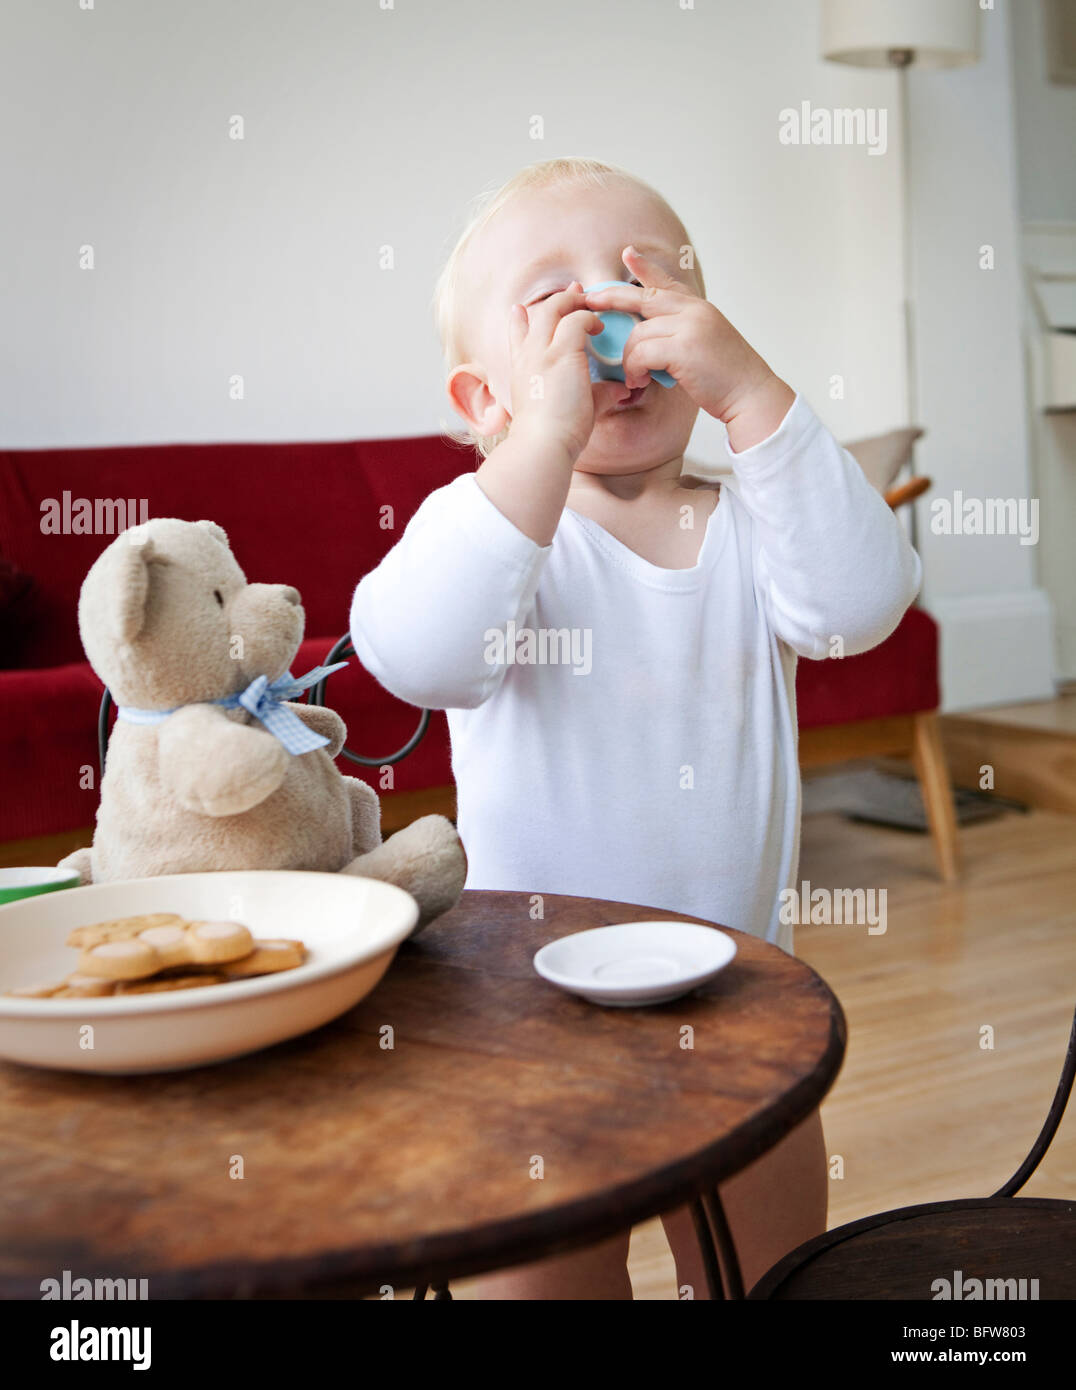 Boy toddler having a pretend cup of tea - Stock Image